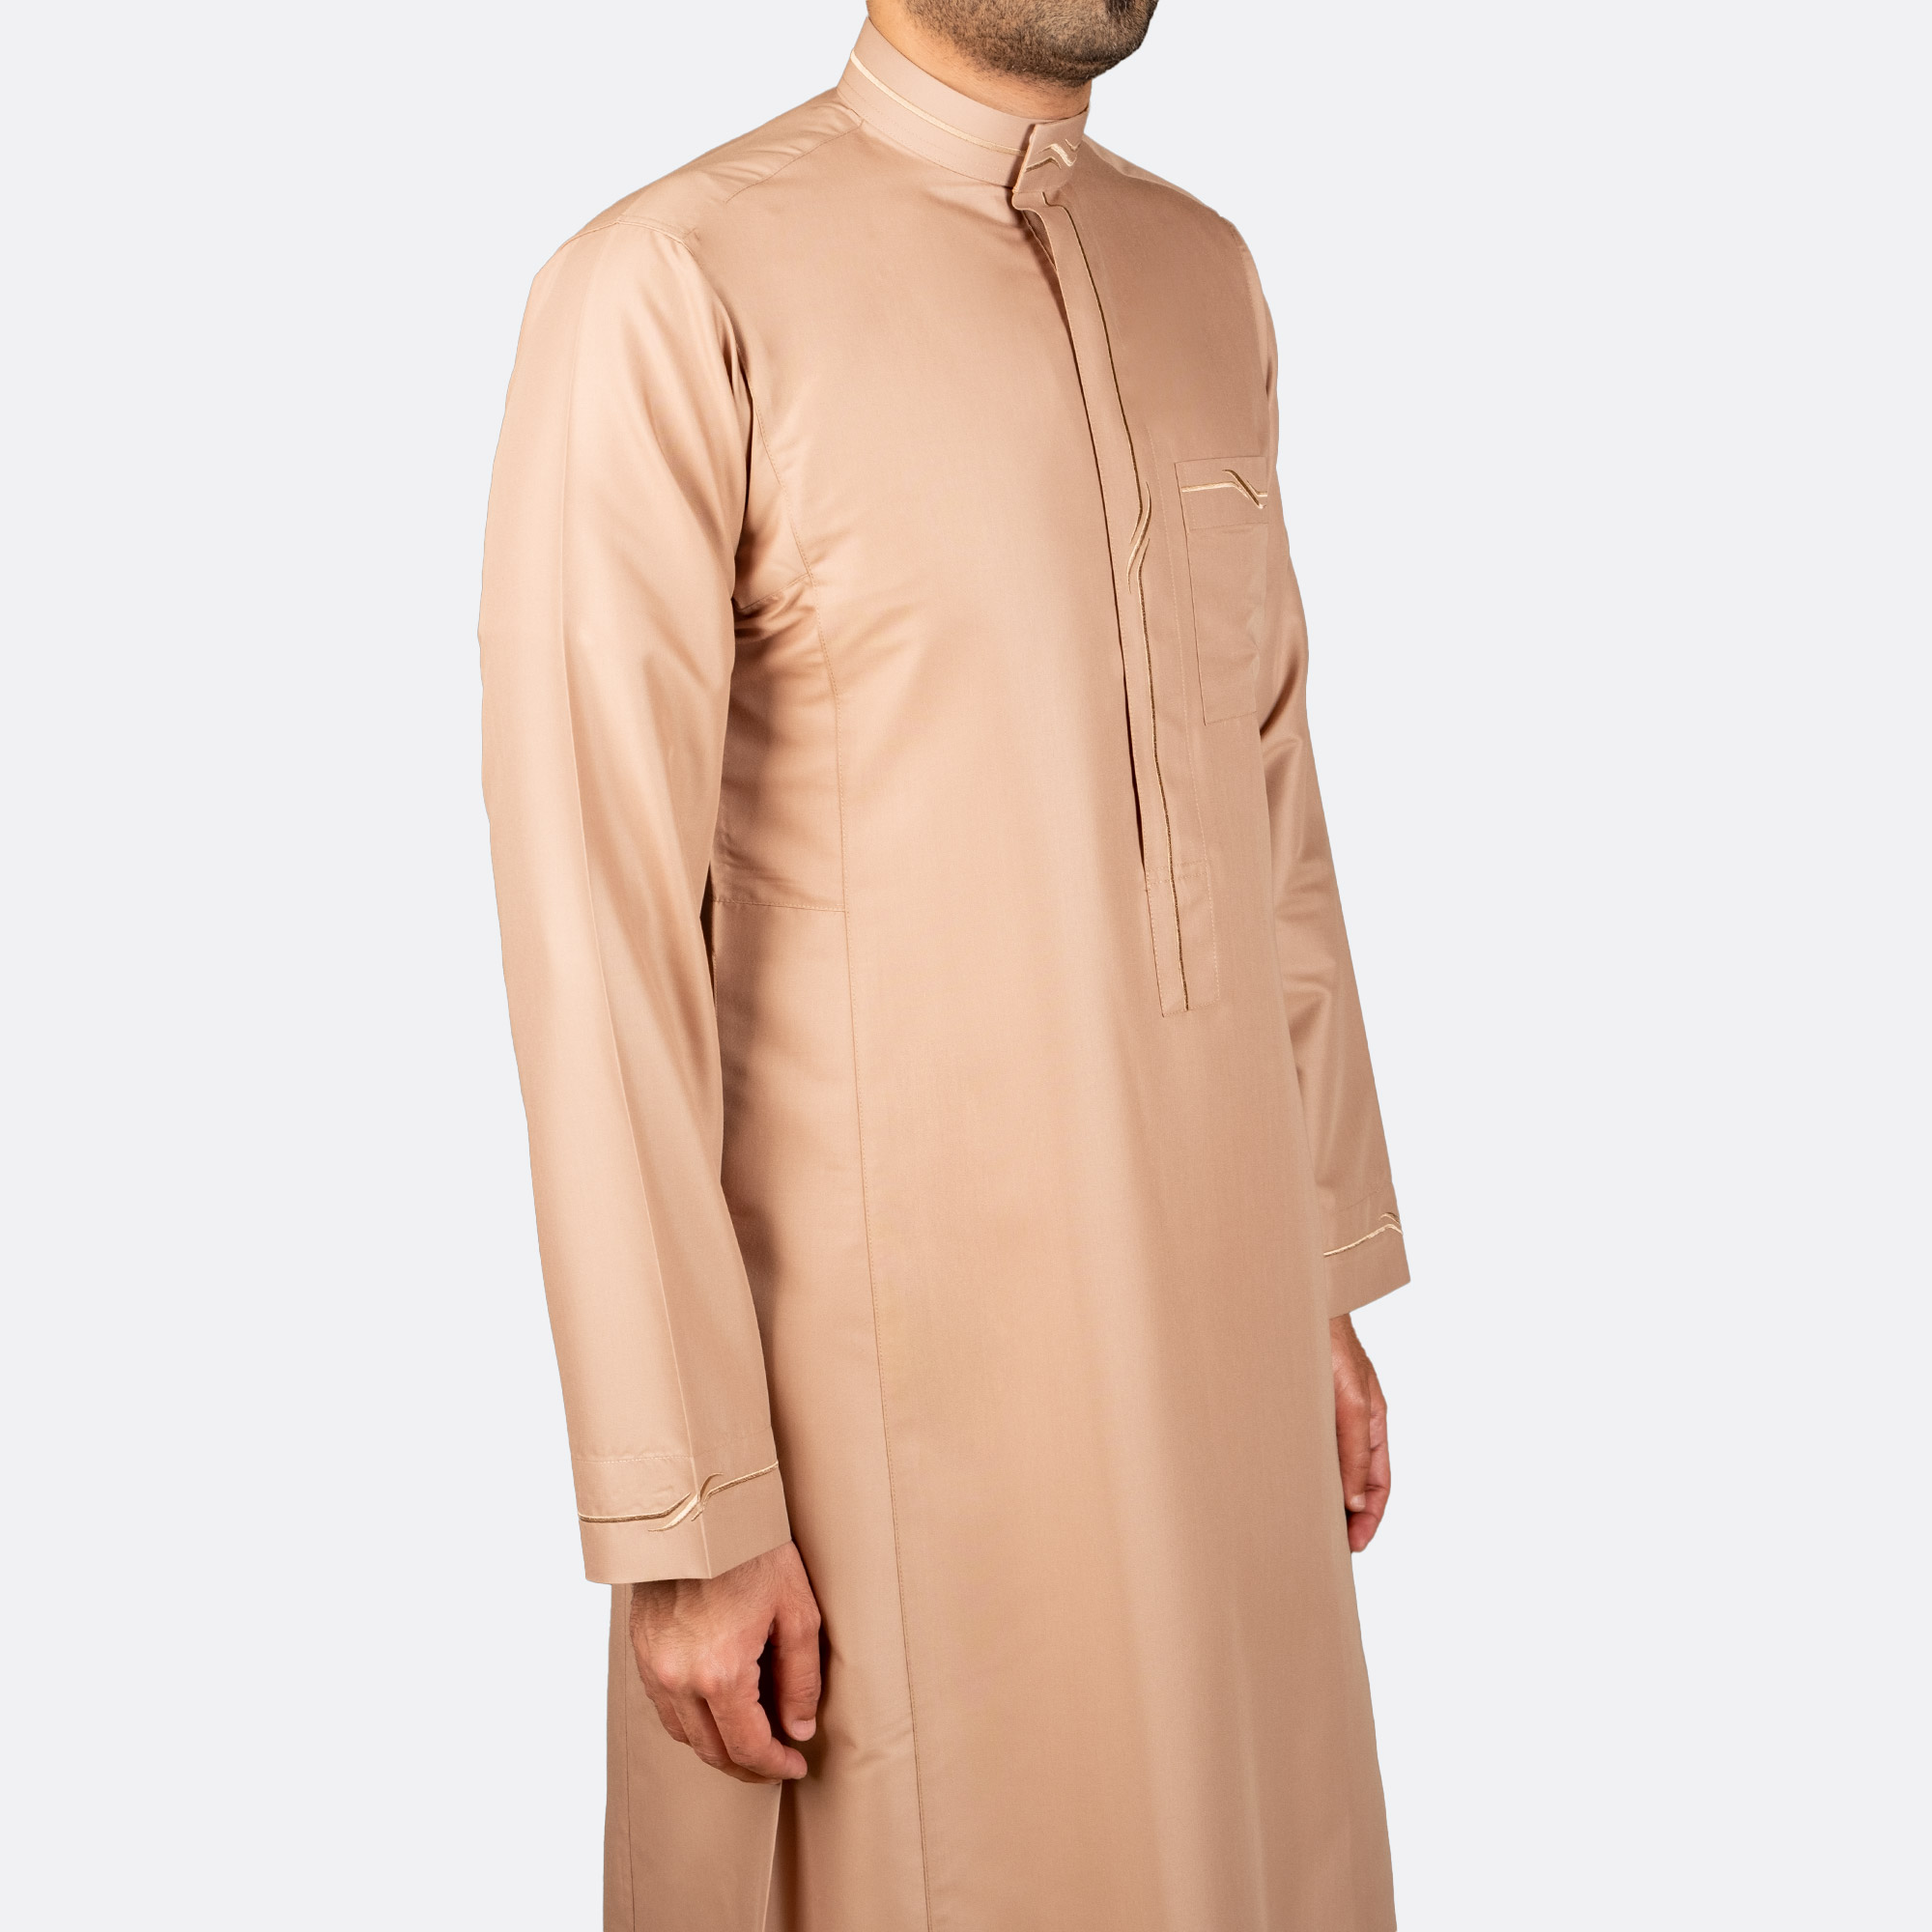 Modern Embroidery Thobe Camel Color